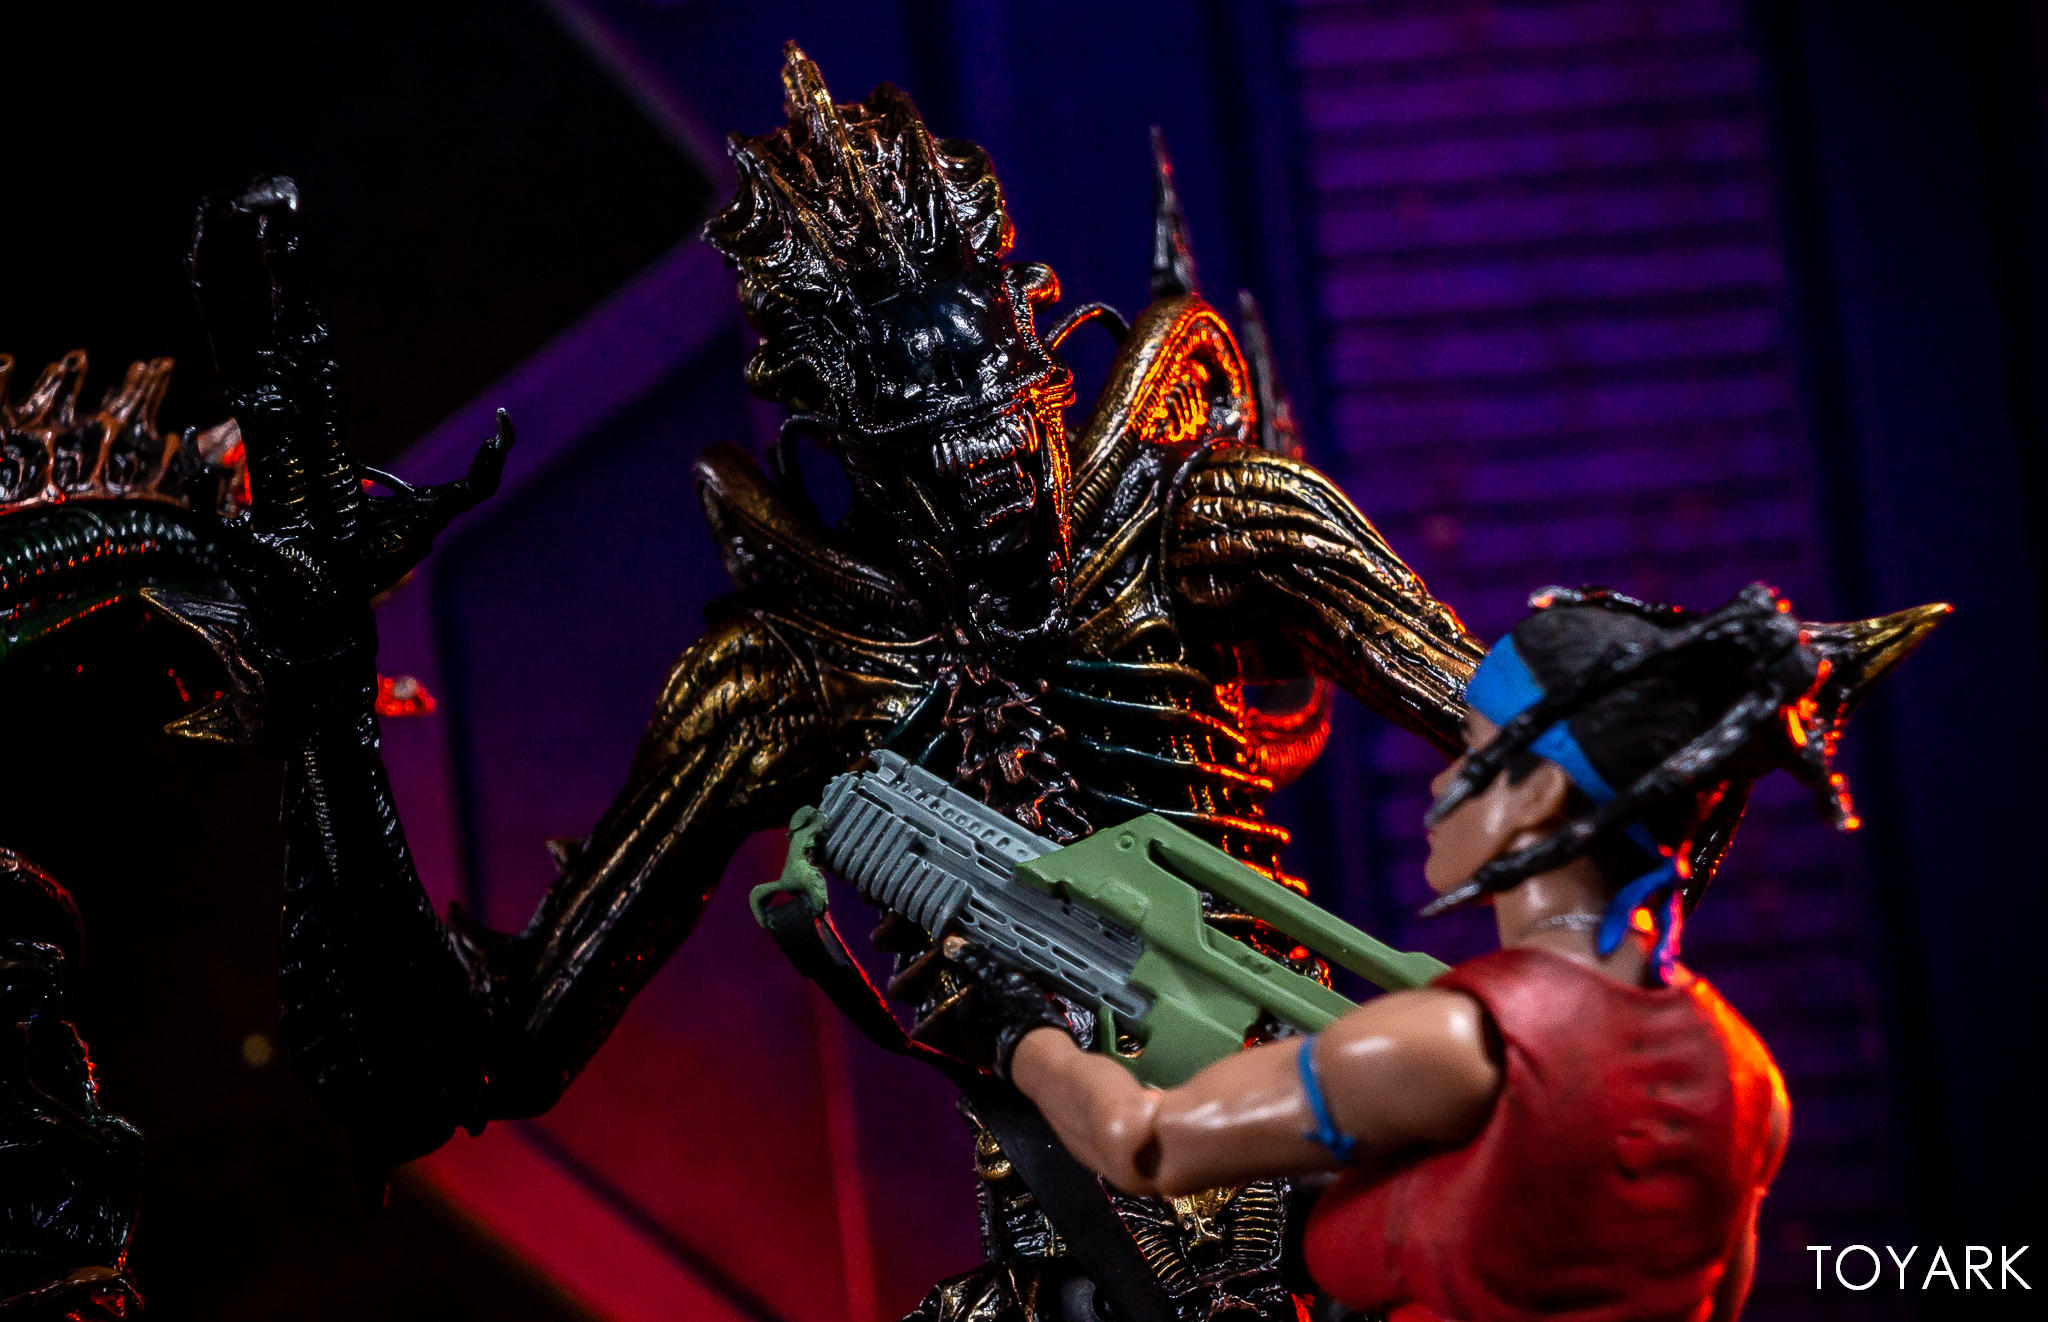 https://news.toyark.com/wp-content/uploads/sites/4/2019/02/Aliens-Series-13-NECA-Gallery-064.jpg